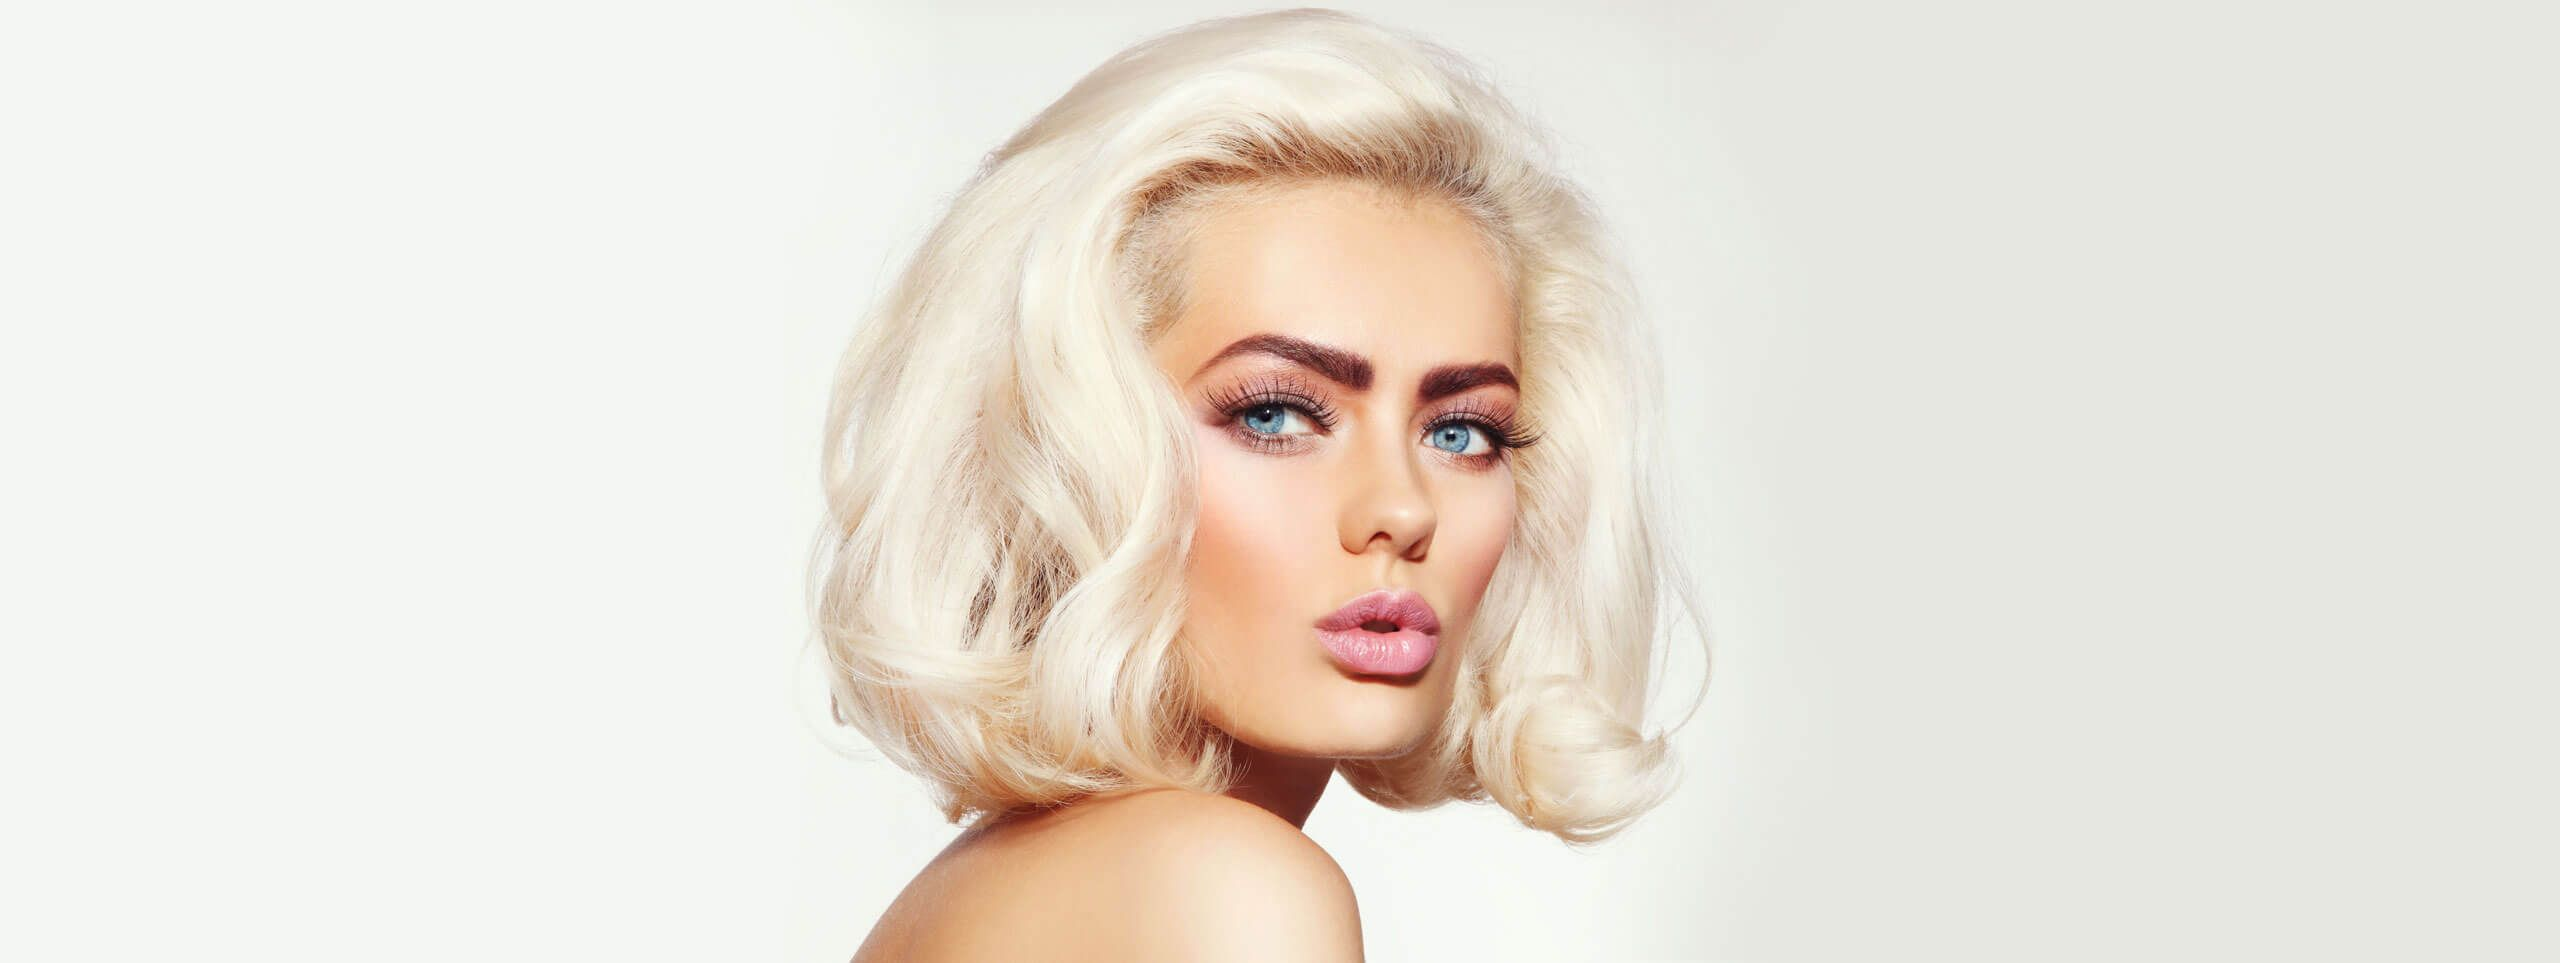 Model wears makeup to complement platinum blonde hair color